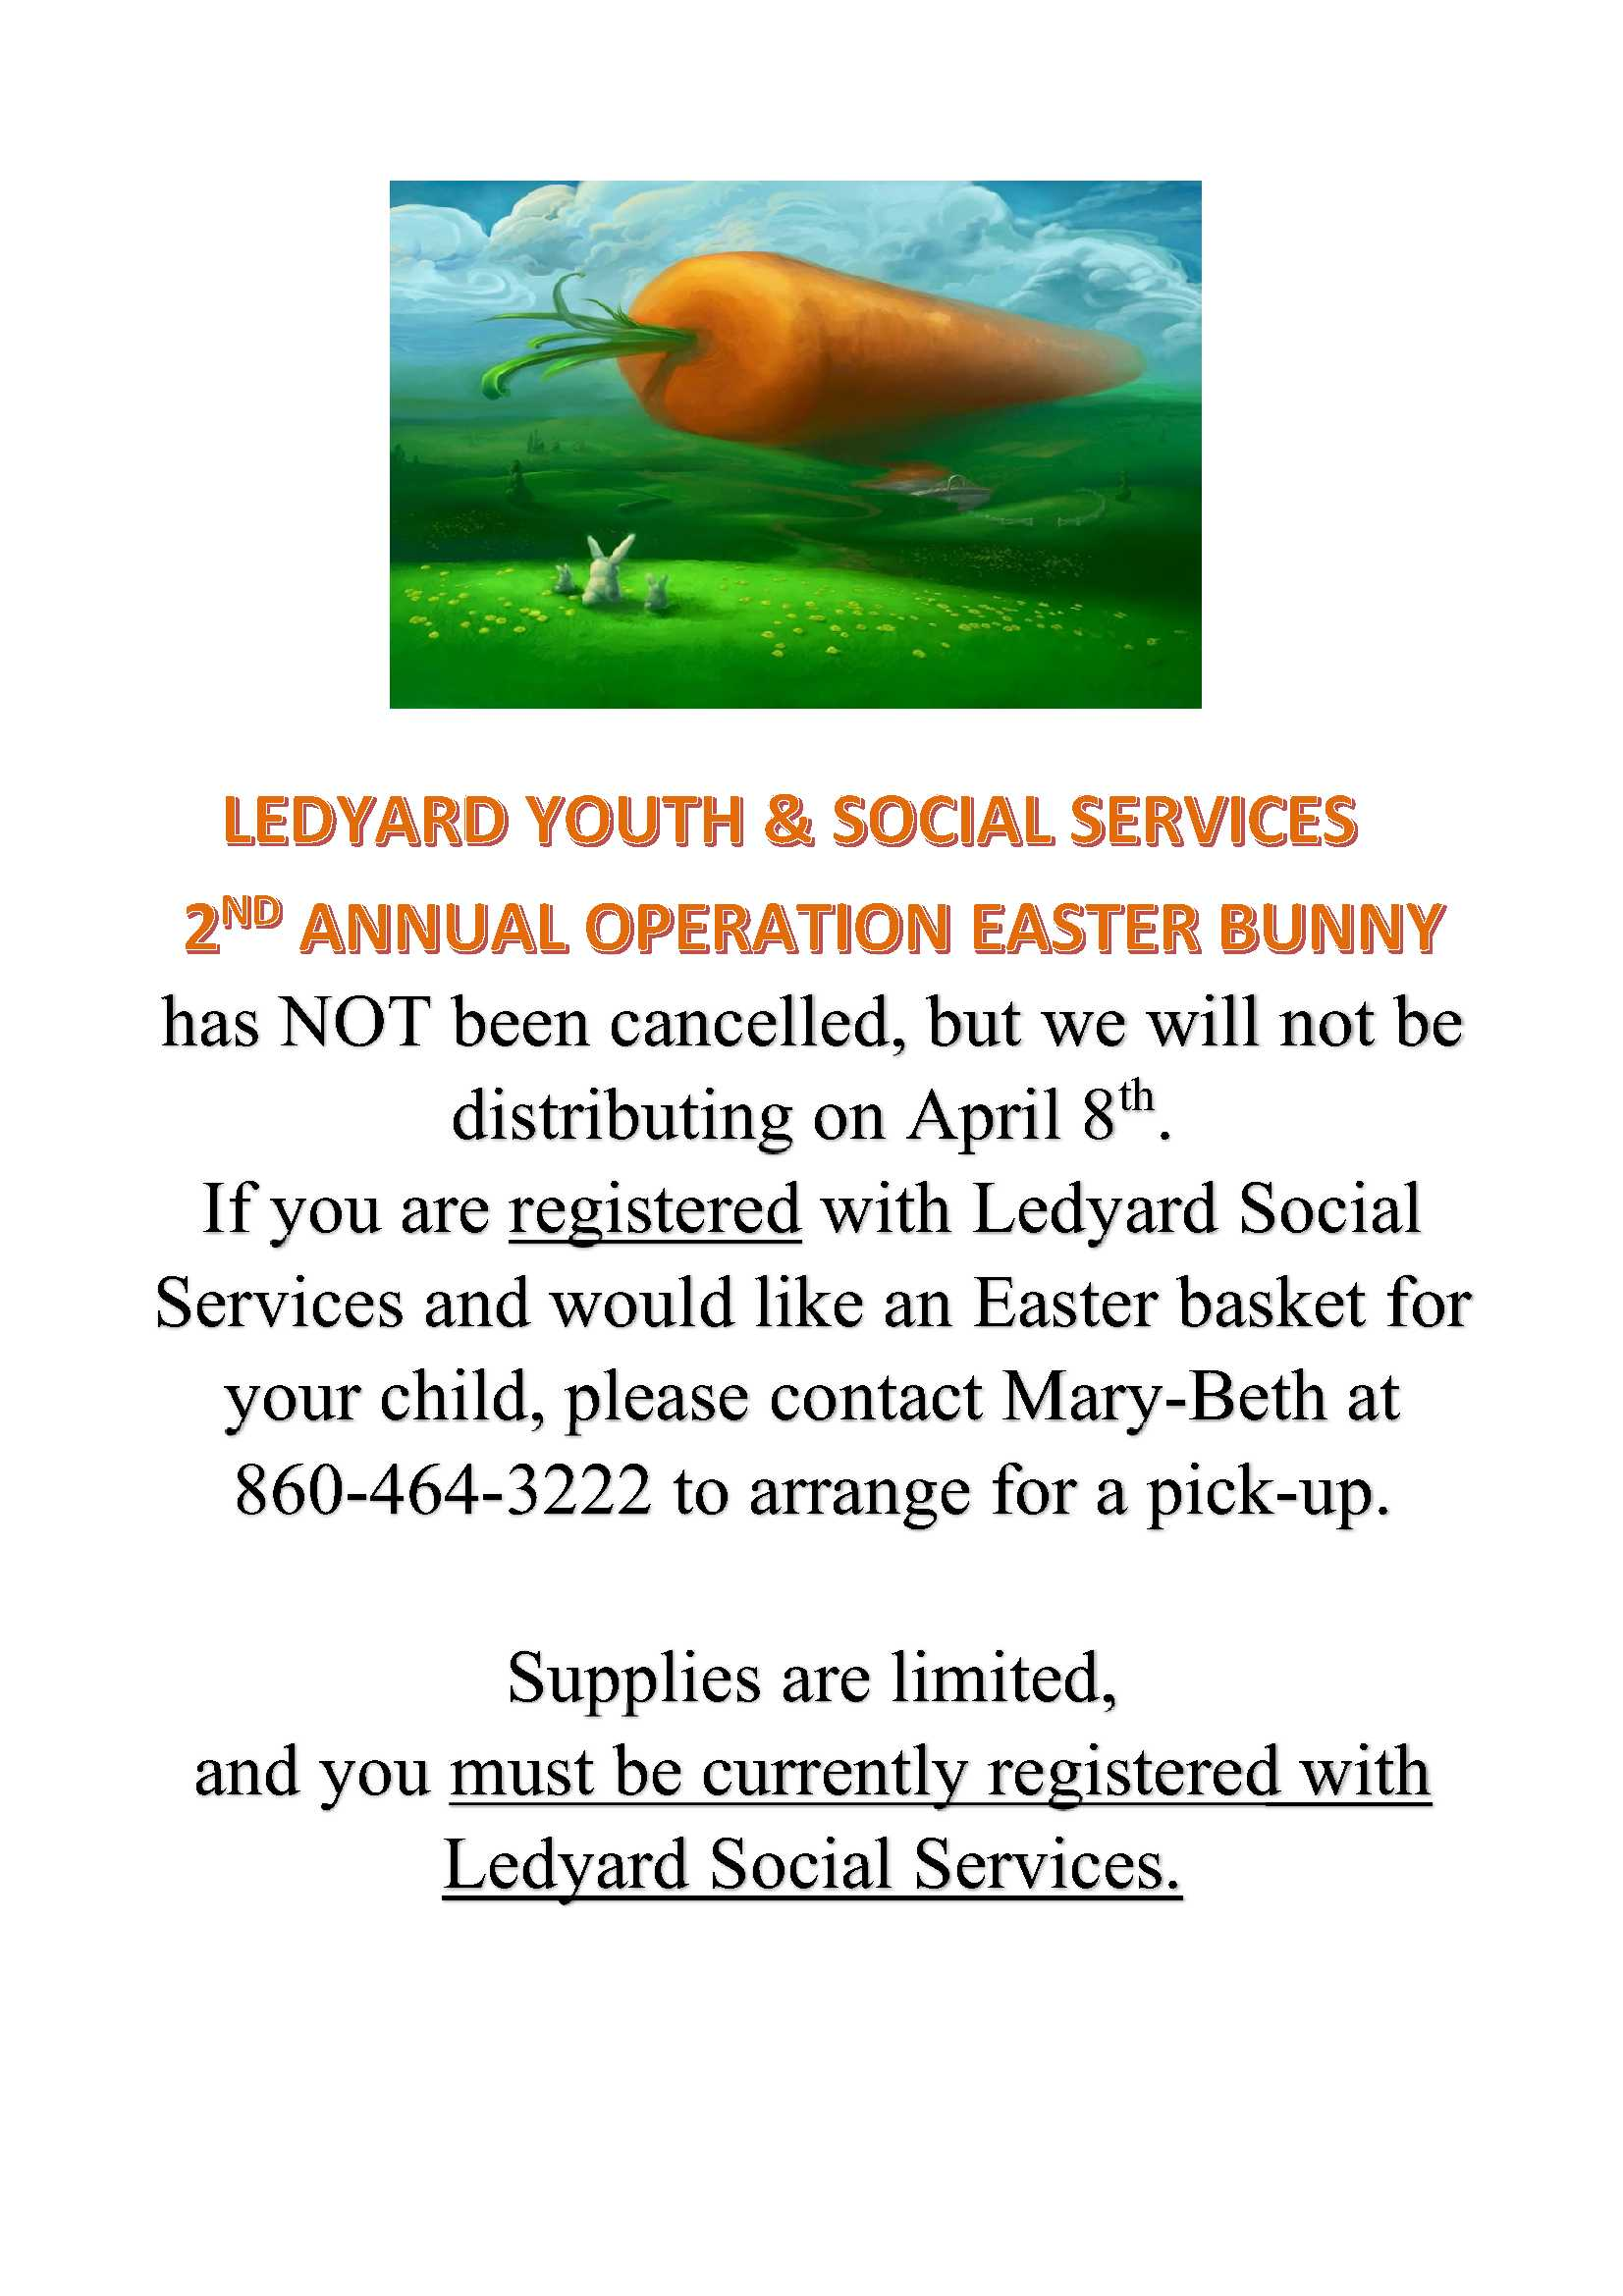 Operation Easter Bunny flyer 2020